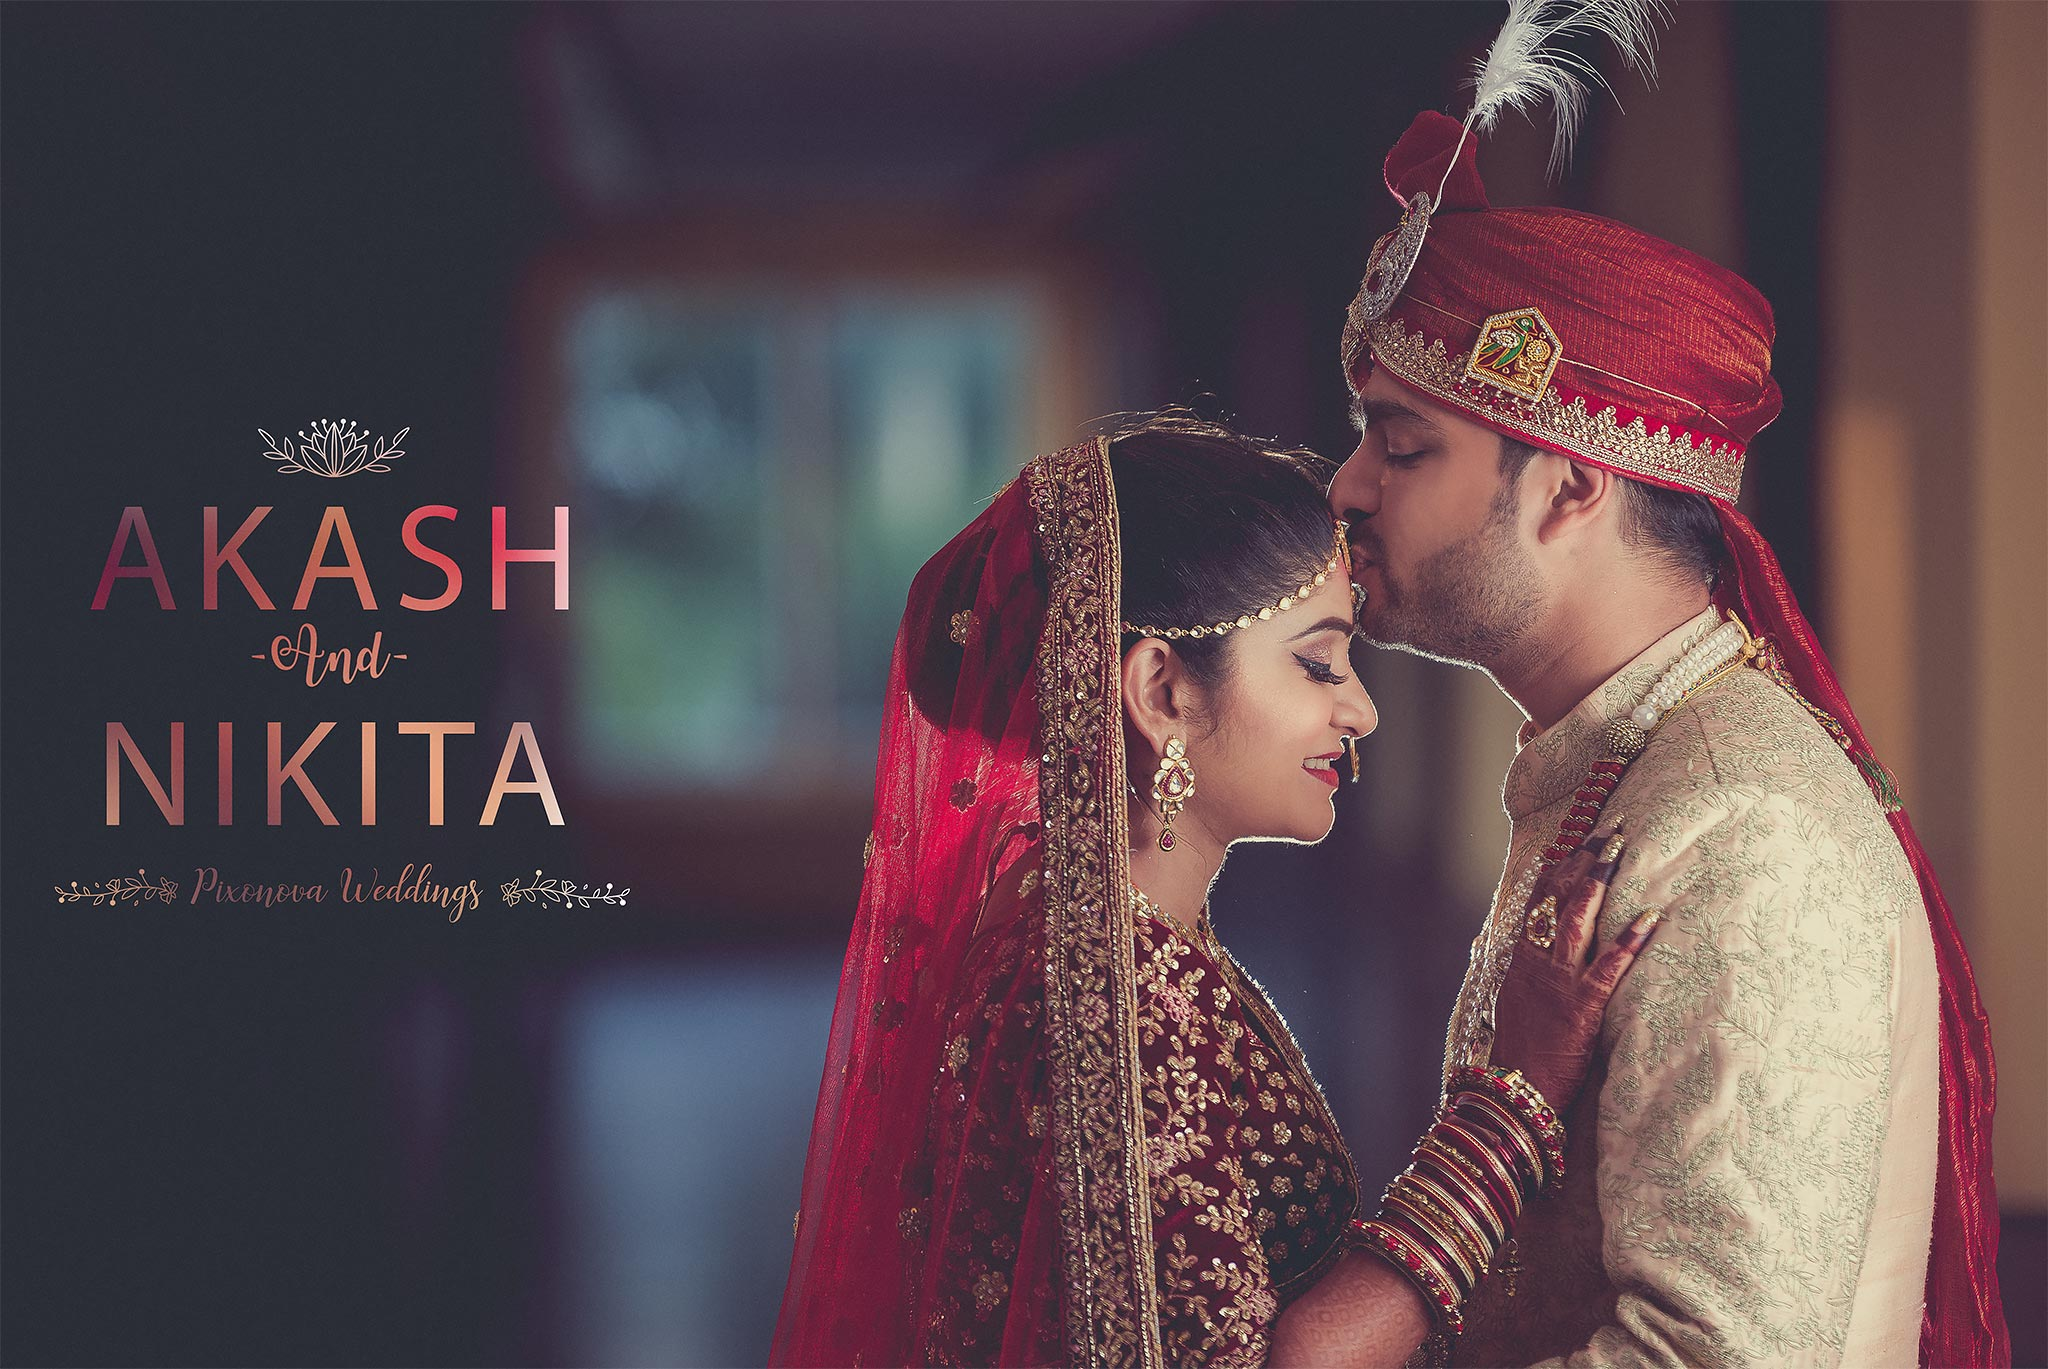 Akash and Nikita wedding photography